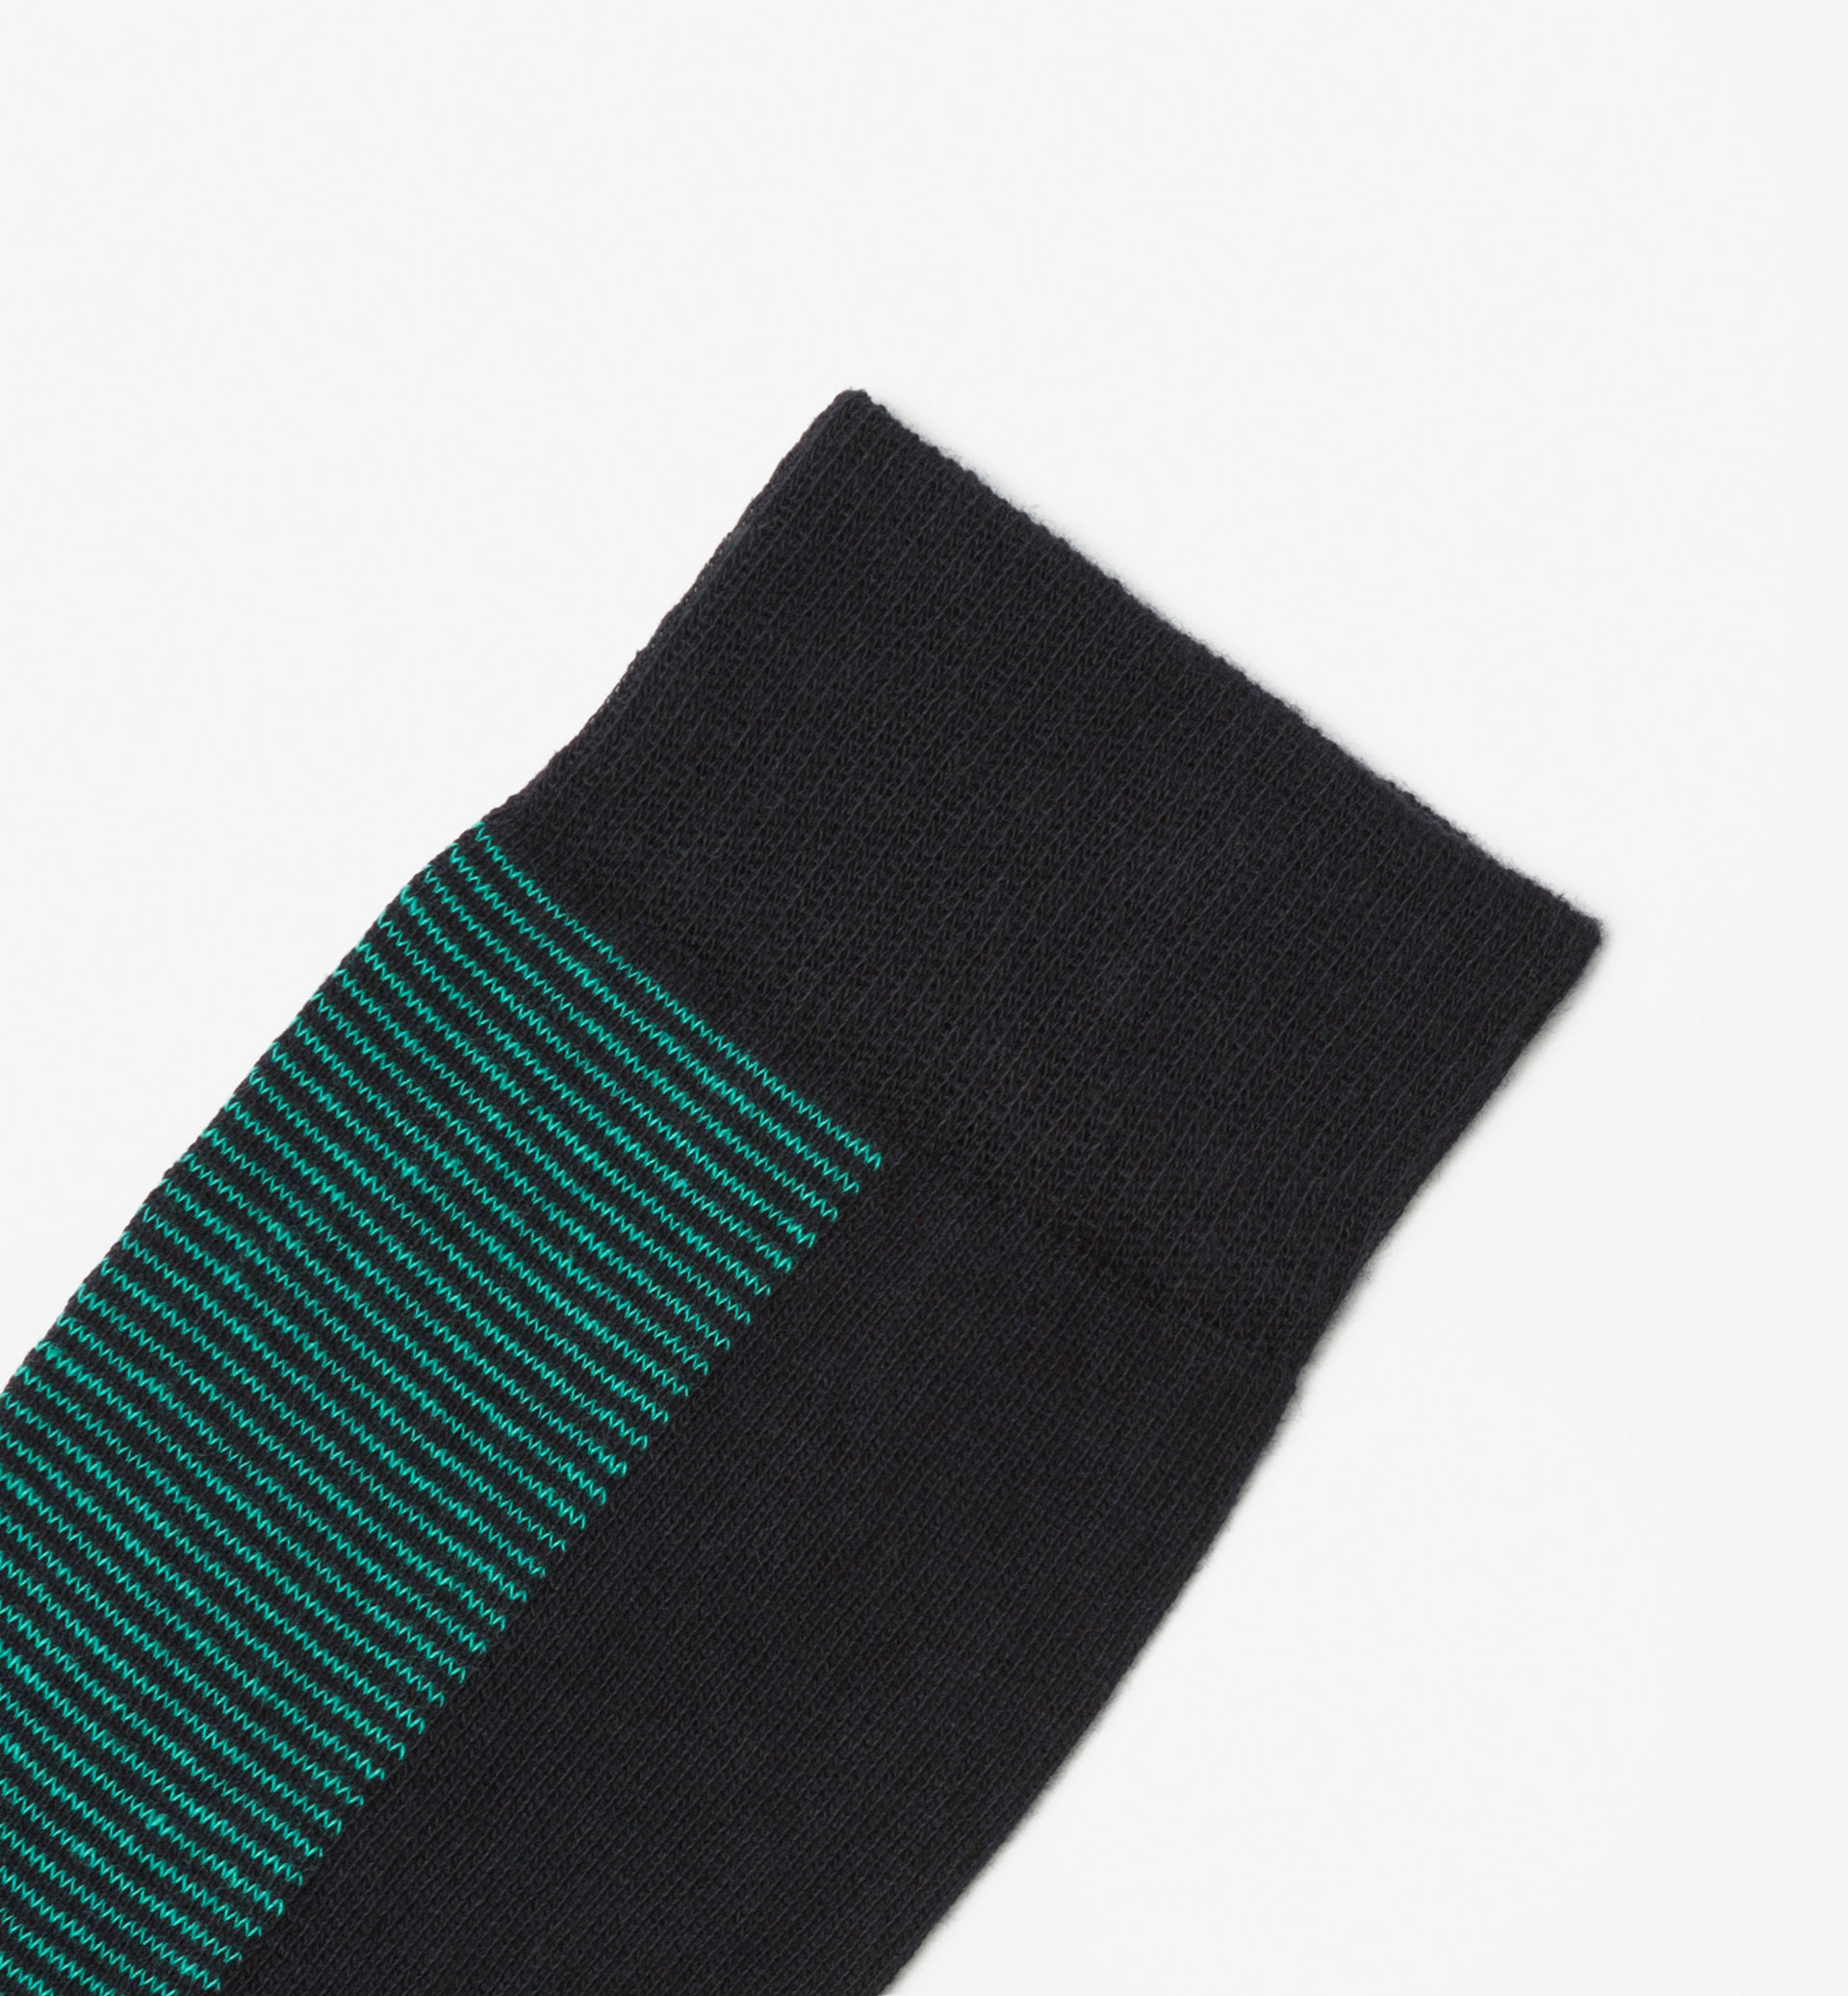 BRUSHED COTTON SOCKS WITH FRONT STRIPES DETAIL